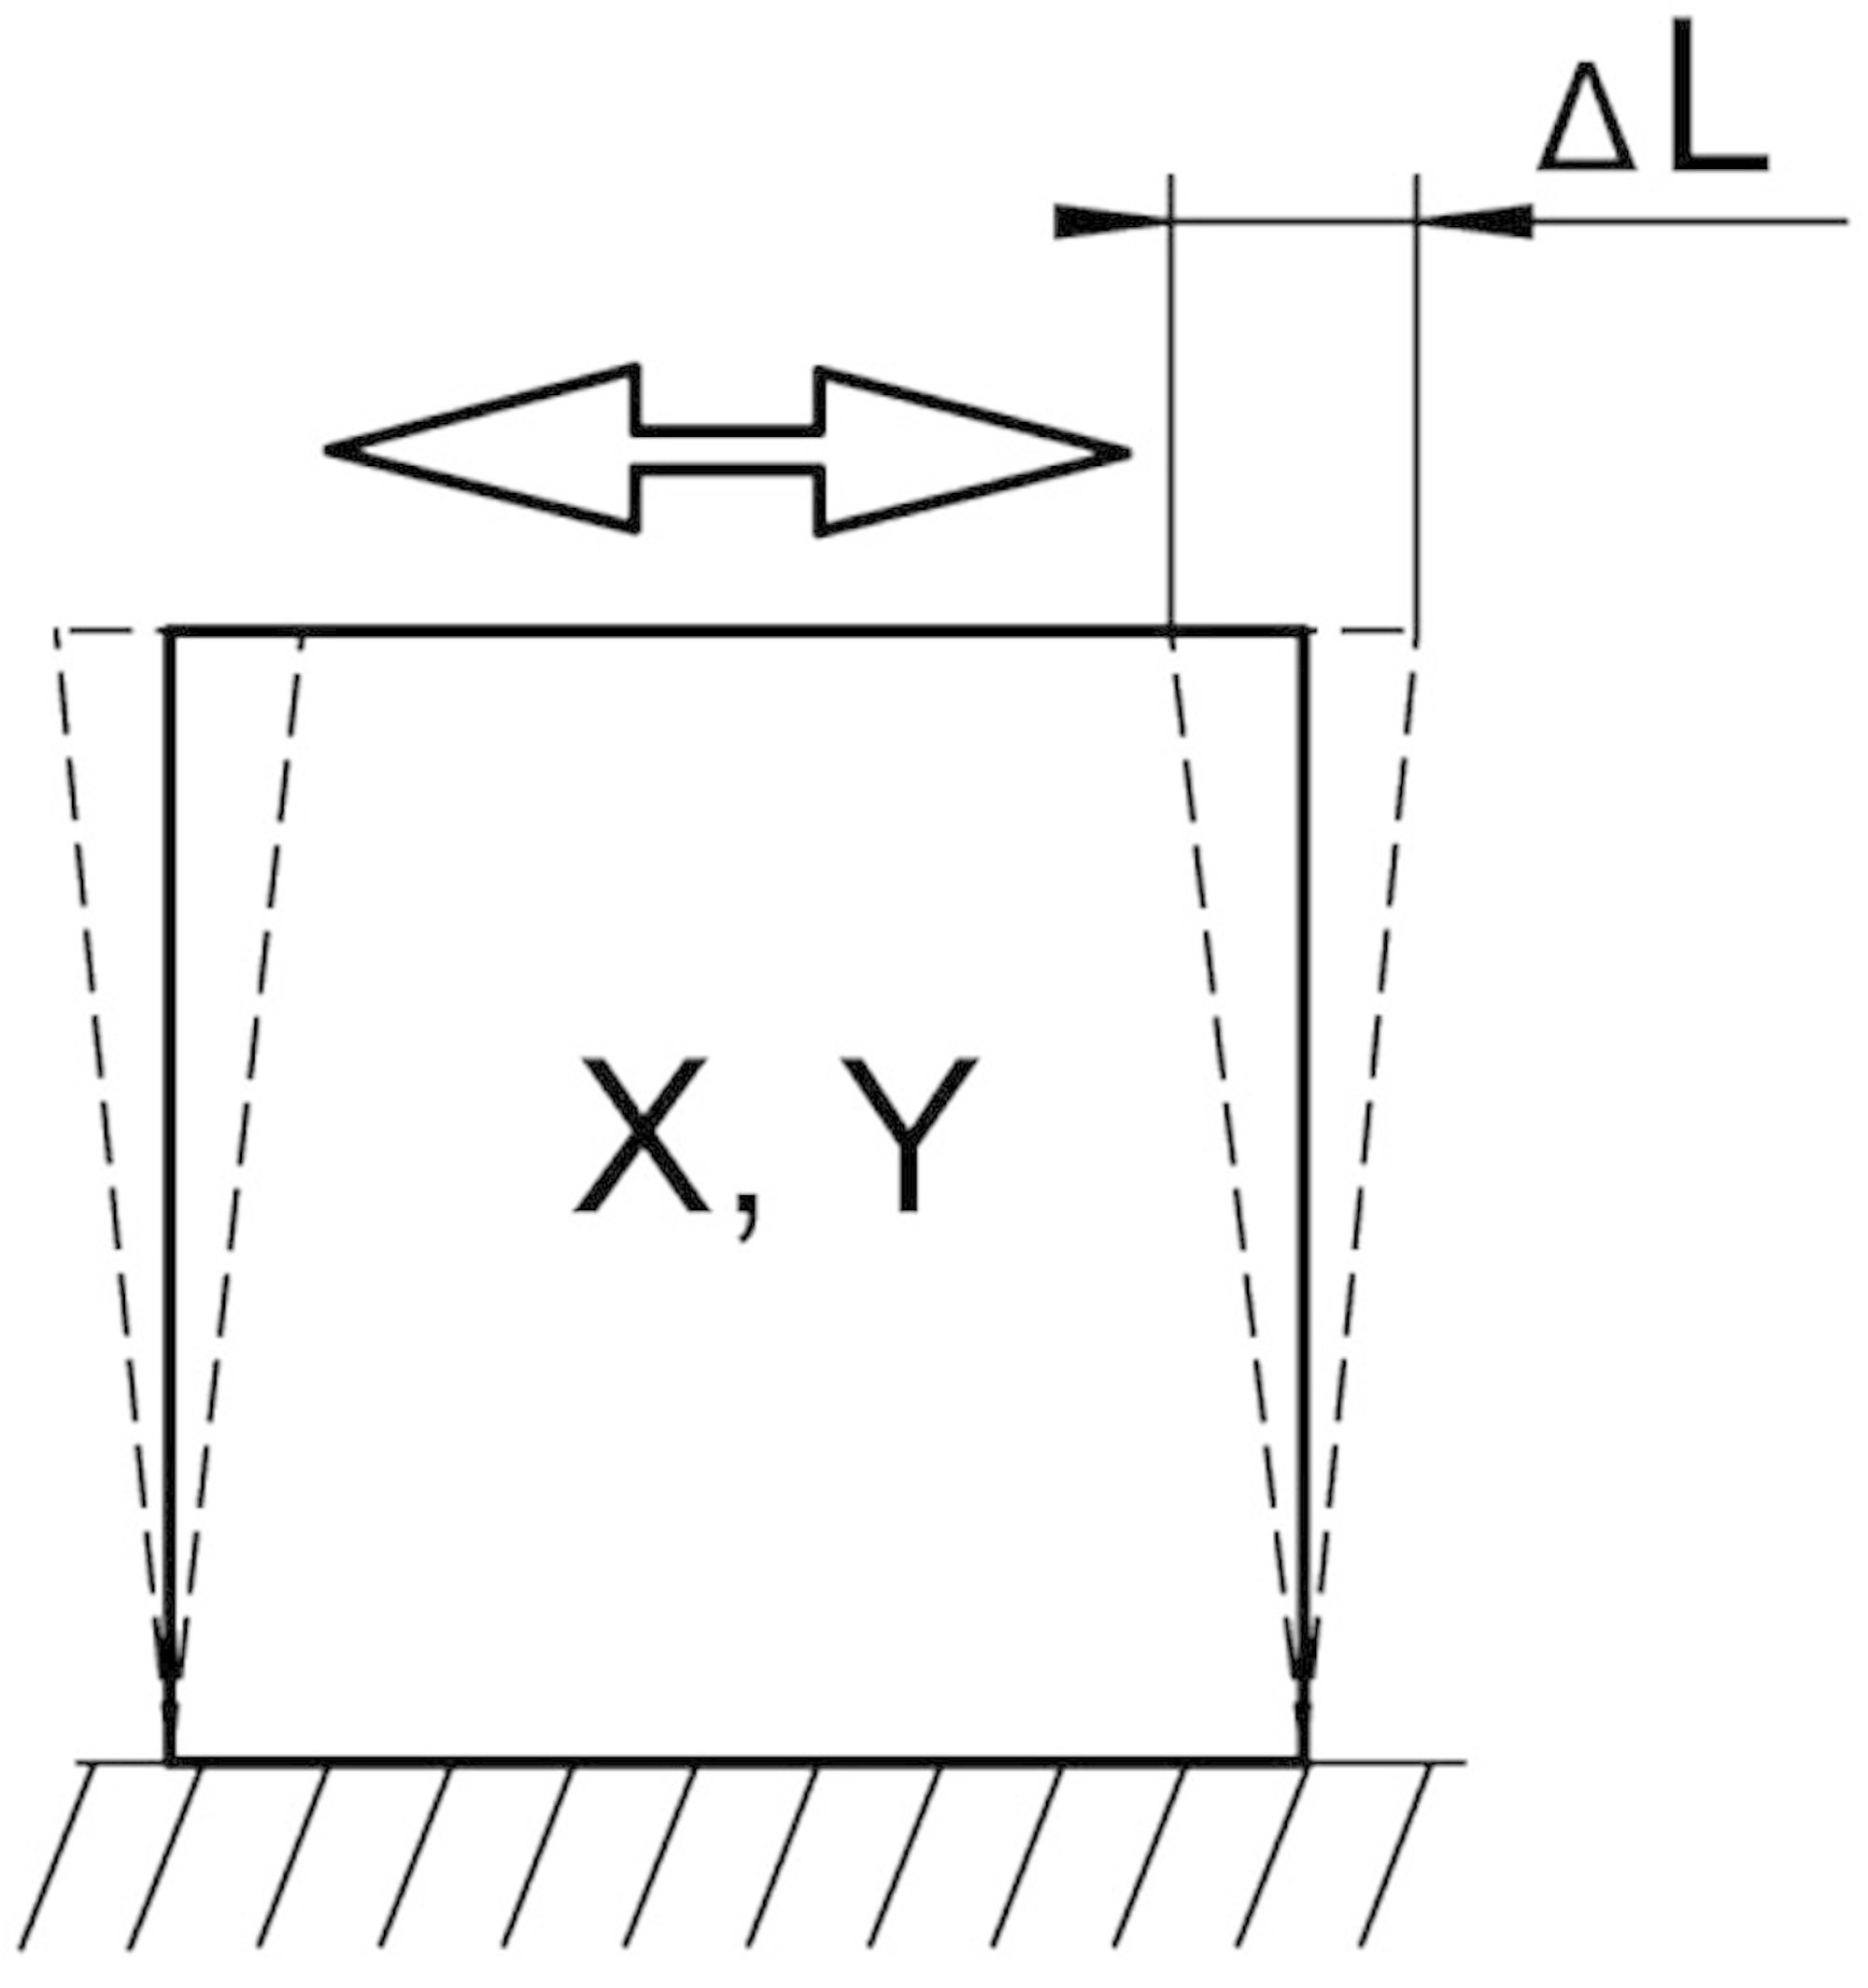 hight resolution of principle of shear motion l refers to the travel range